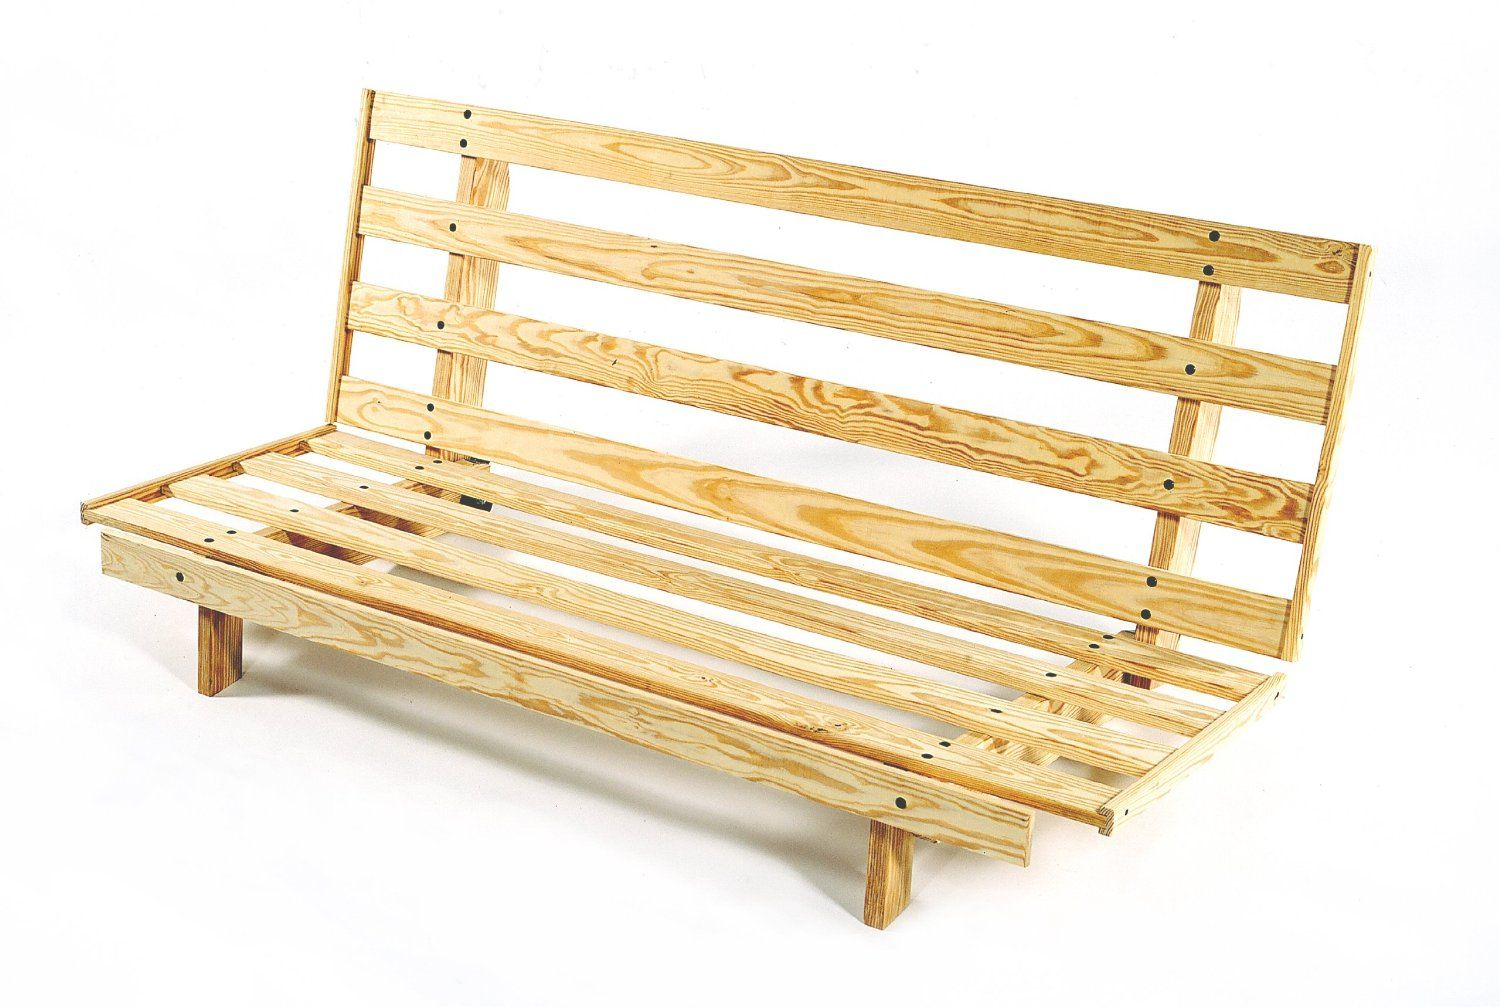 Slick Futon Frame Full Size Only